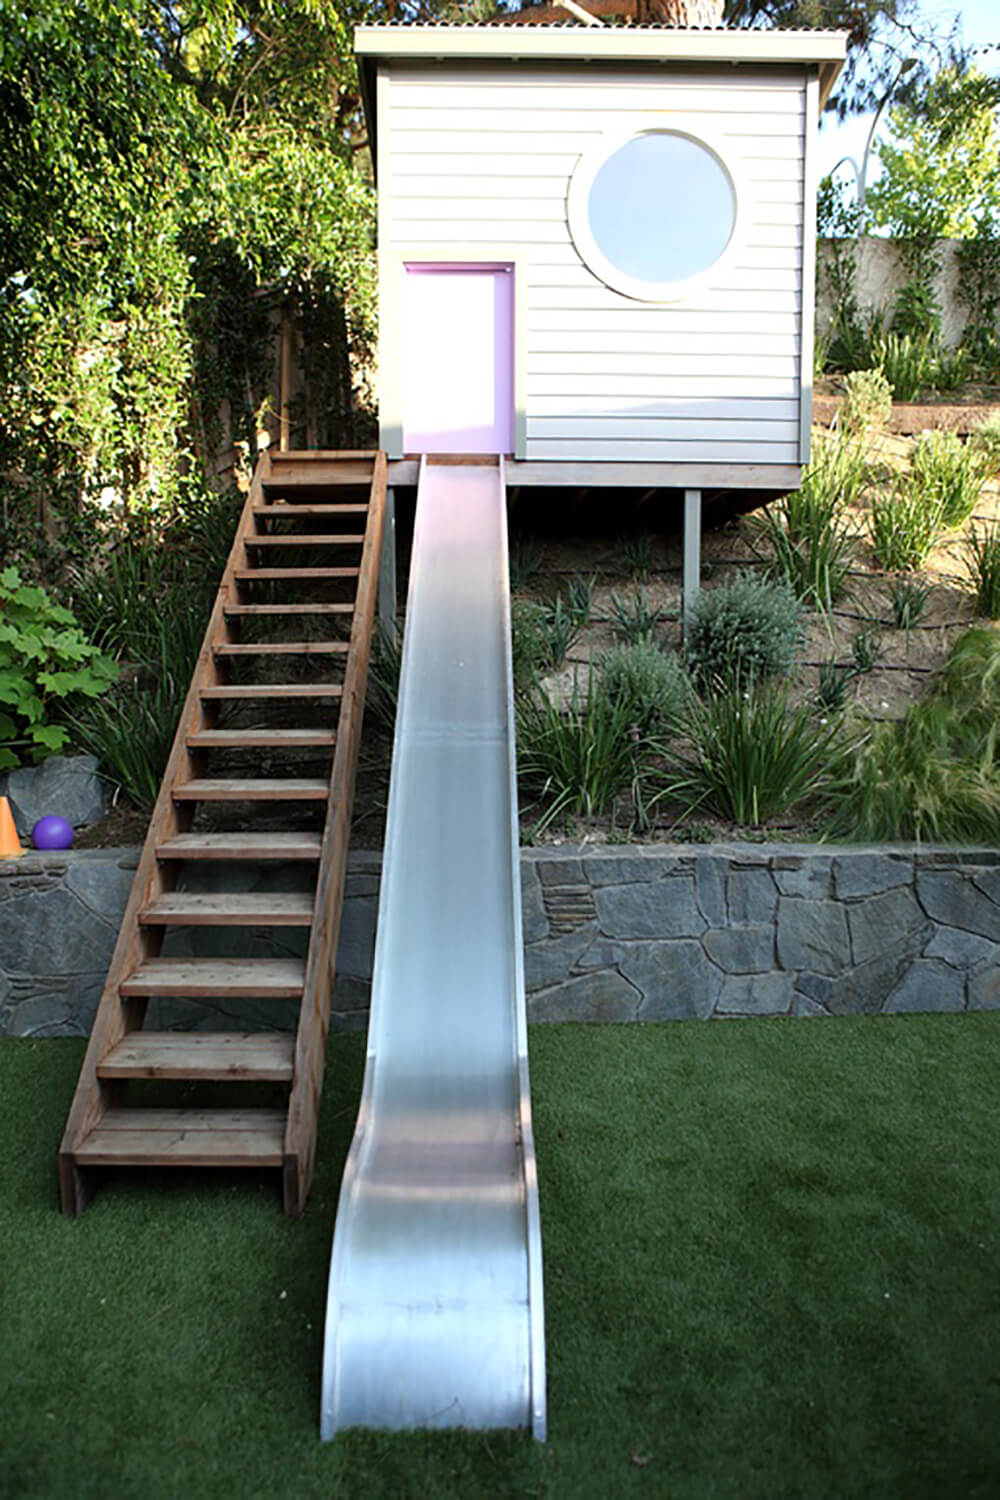 A long set of stairs leads up to a playhouse up on a hill. A metal slide leads down from a light pink door into the lush yard.